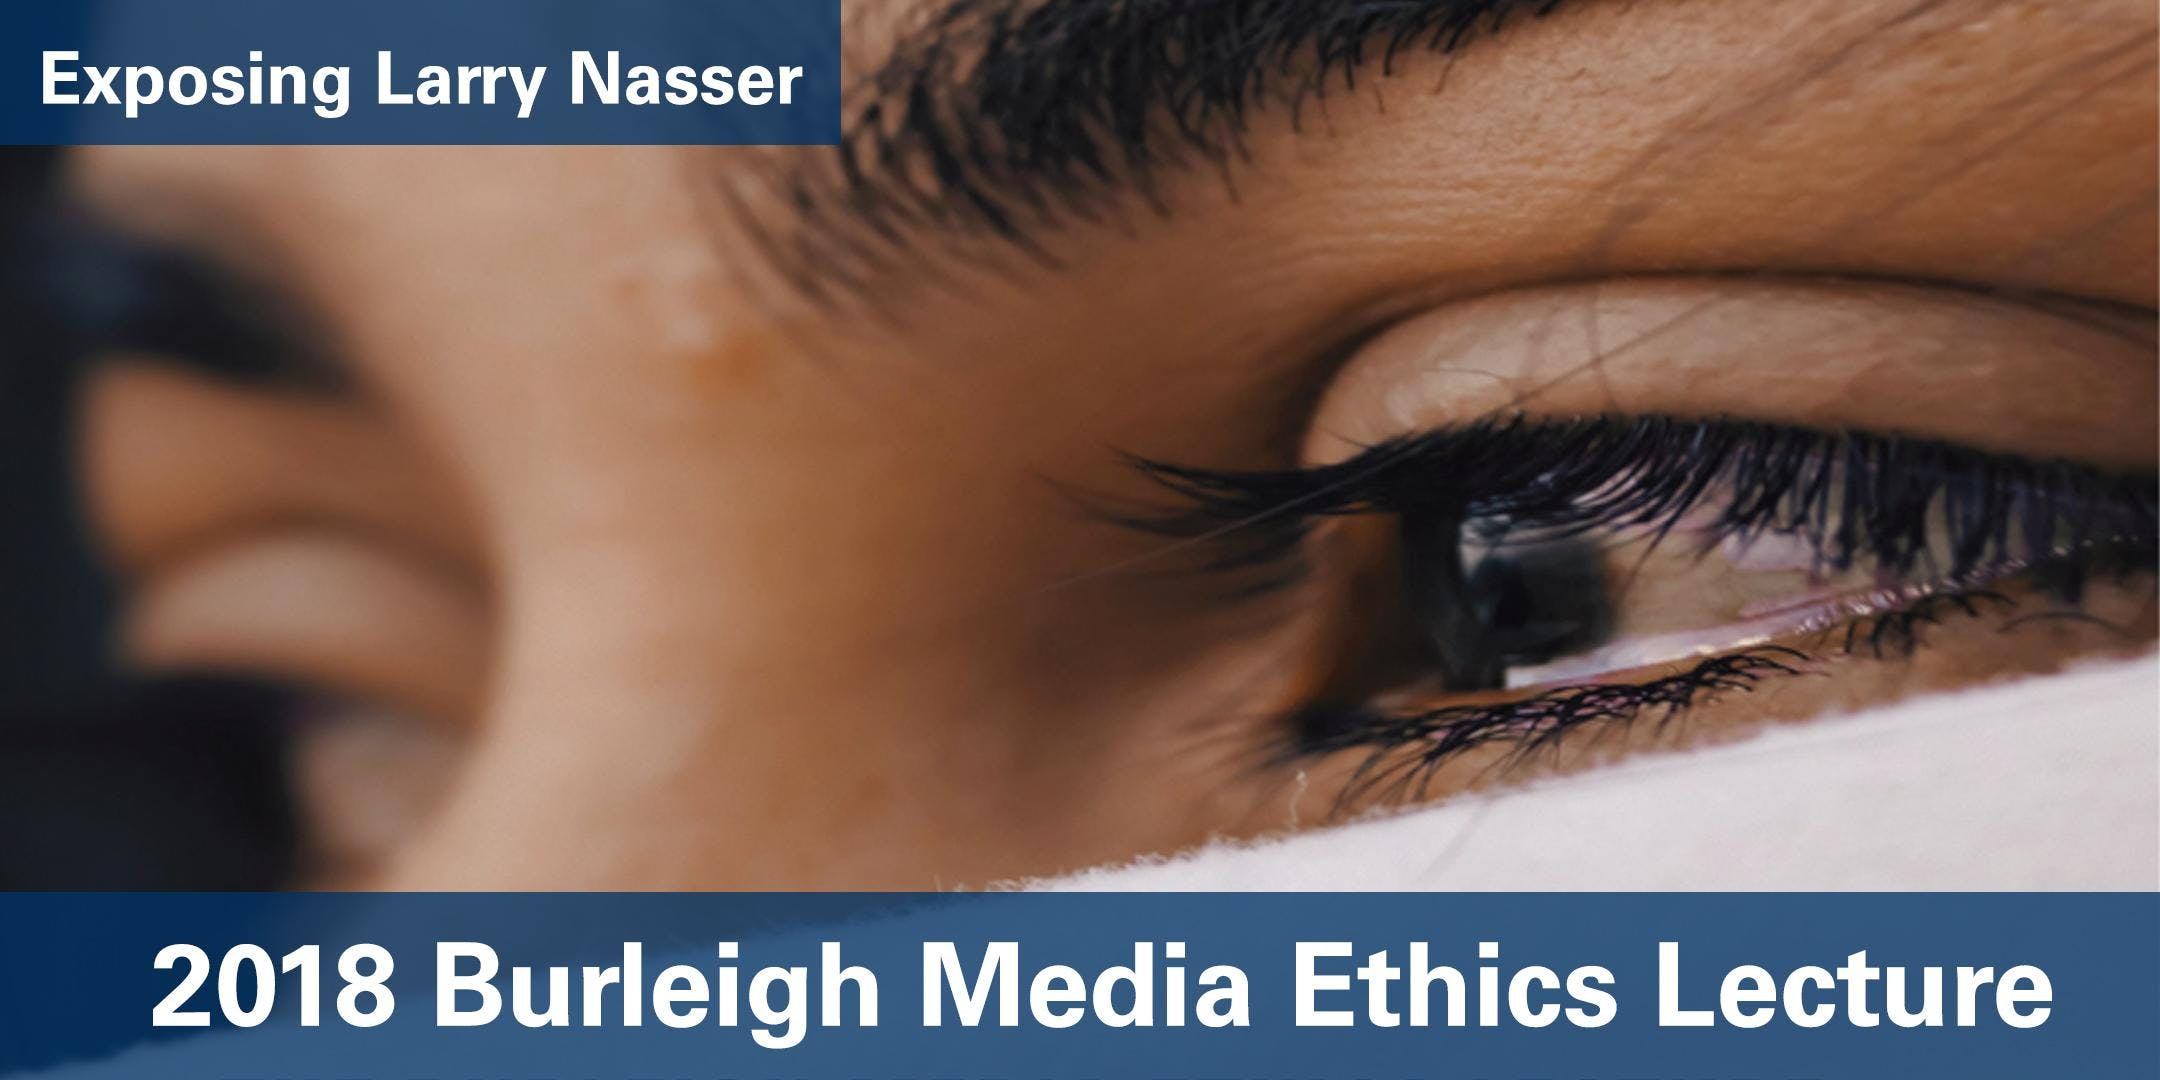 2018 Burleigh Media Ethics Lecture